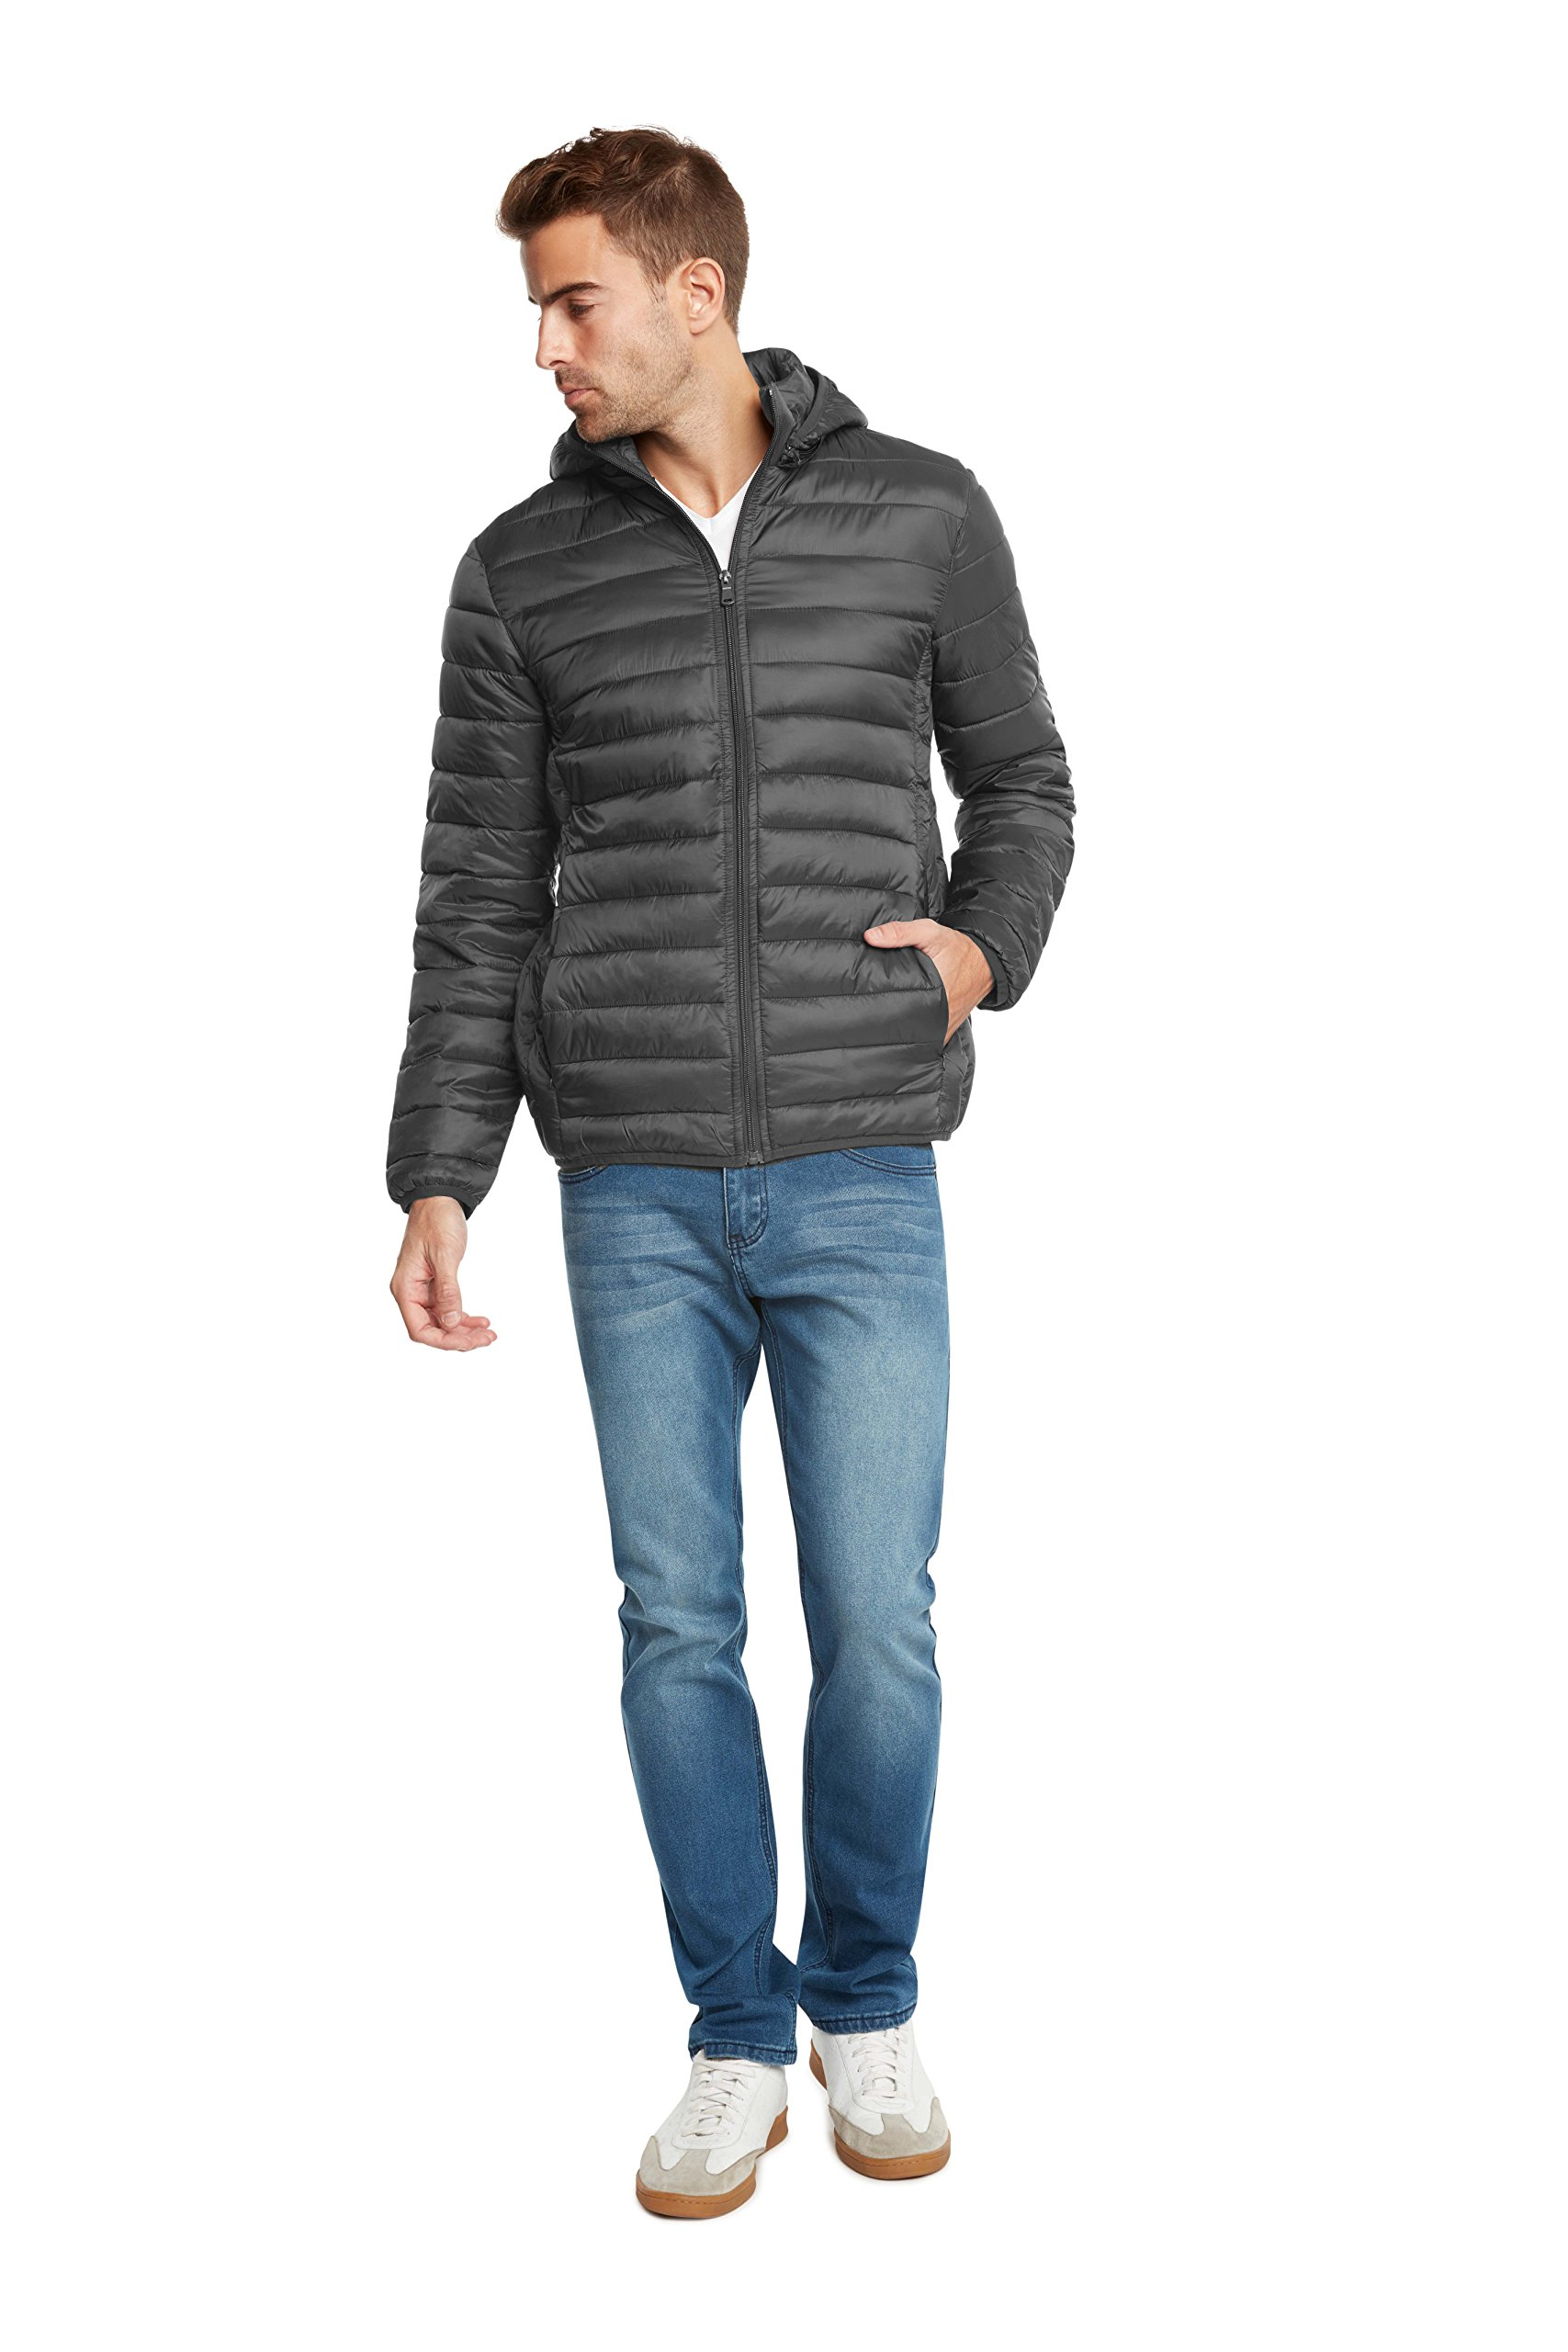 9 Crowns Essentials Men's Lightweight Puffer Jacket-Gray-Small by 9 Crowns